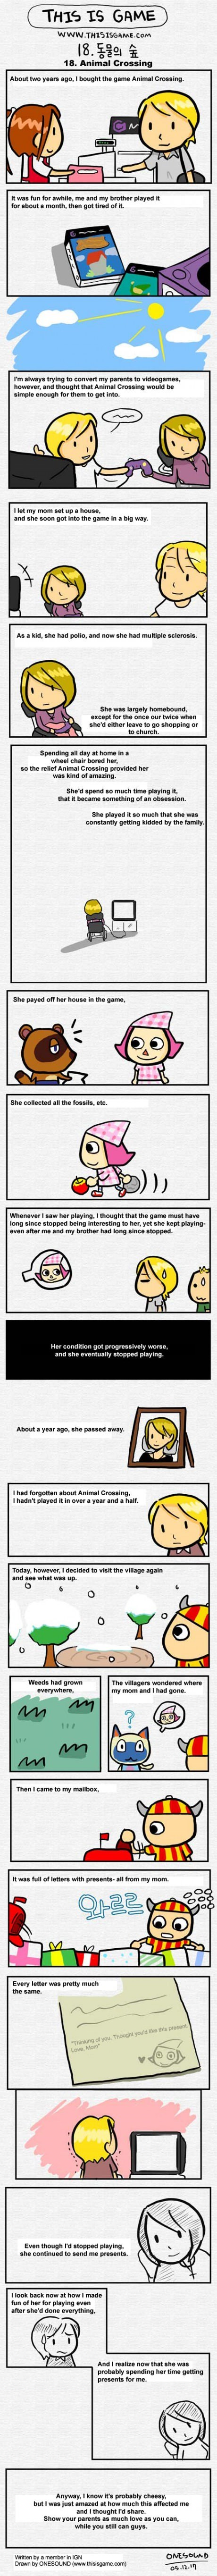 Sad,moms,animal crossing,web comics